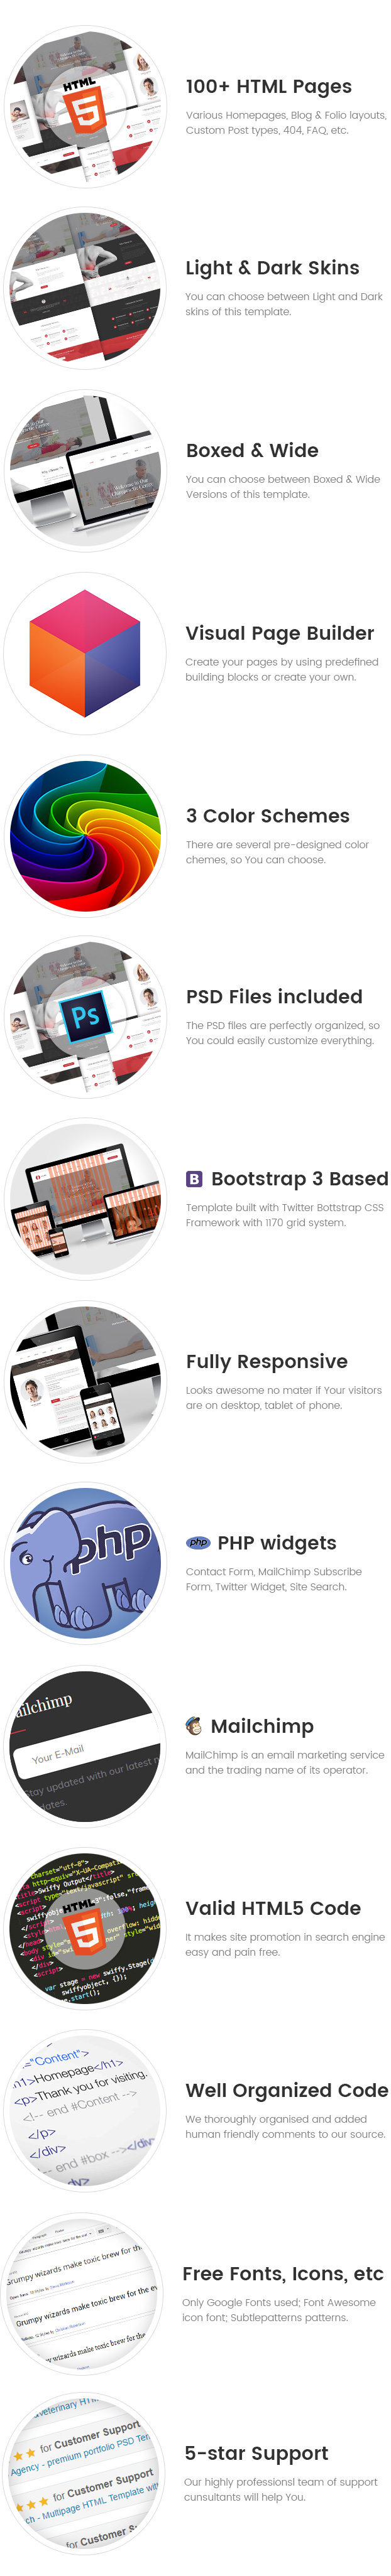 Active Life - Chiropractic Center HTML Template with Visual Page Builder